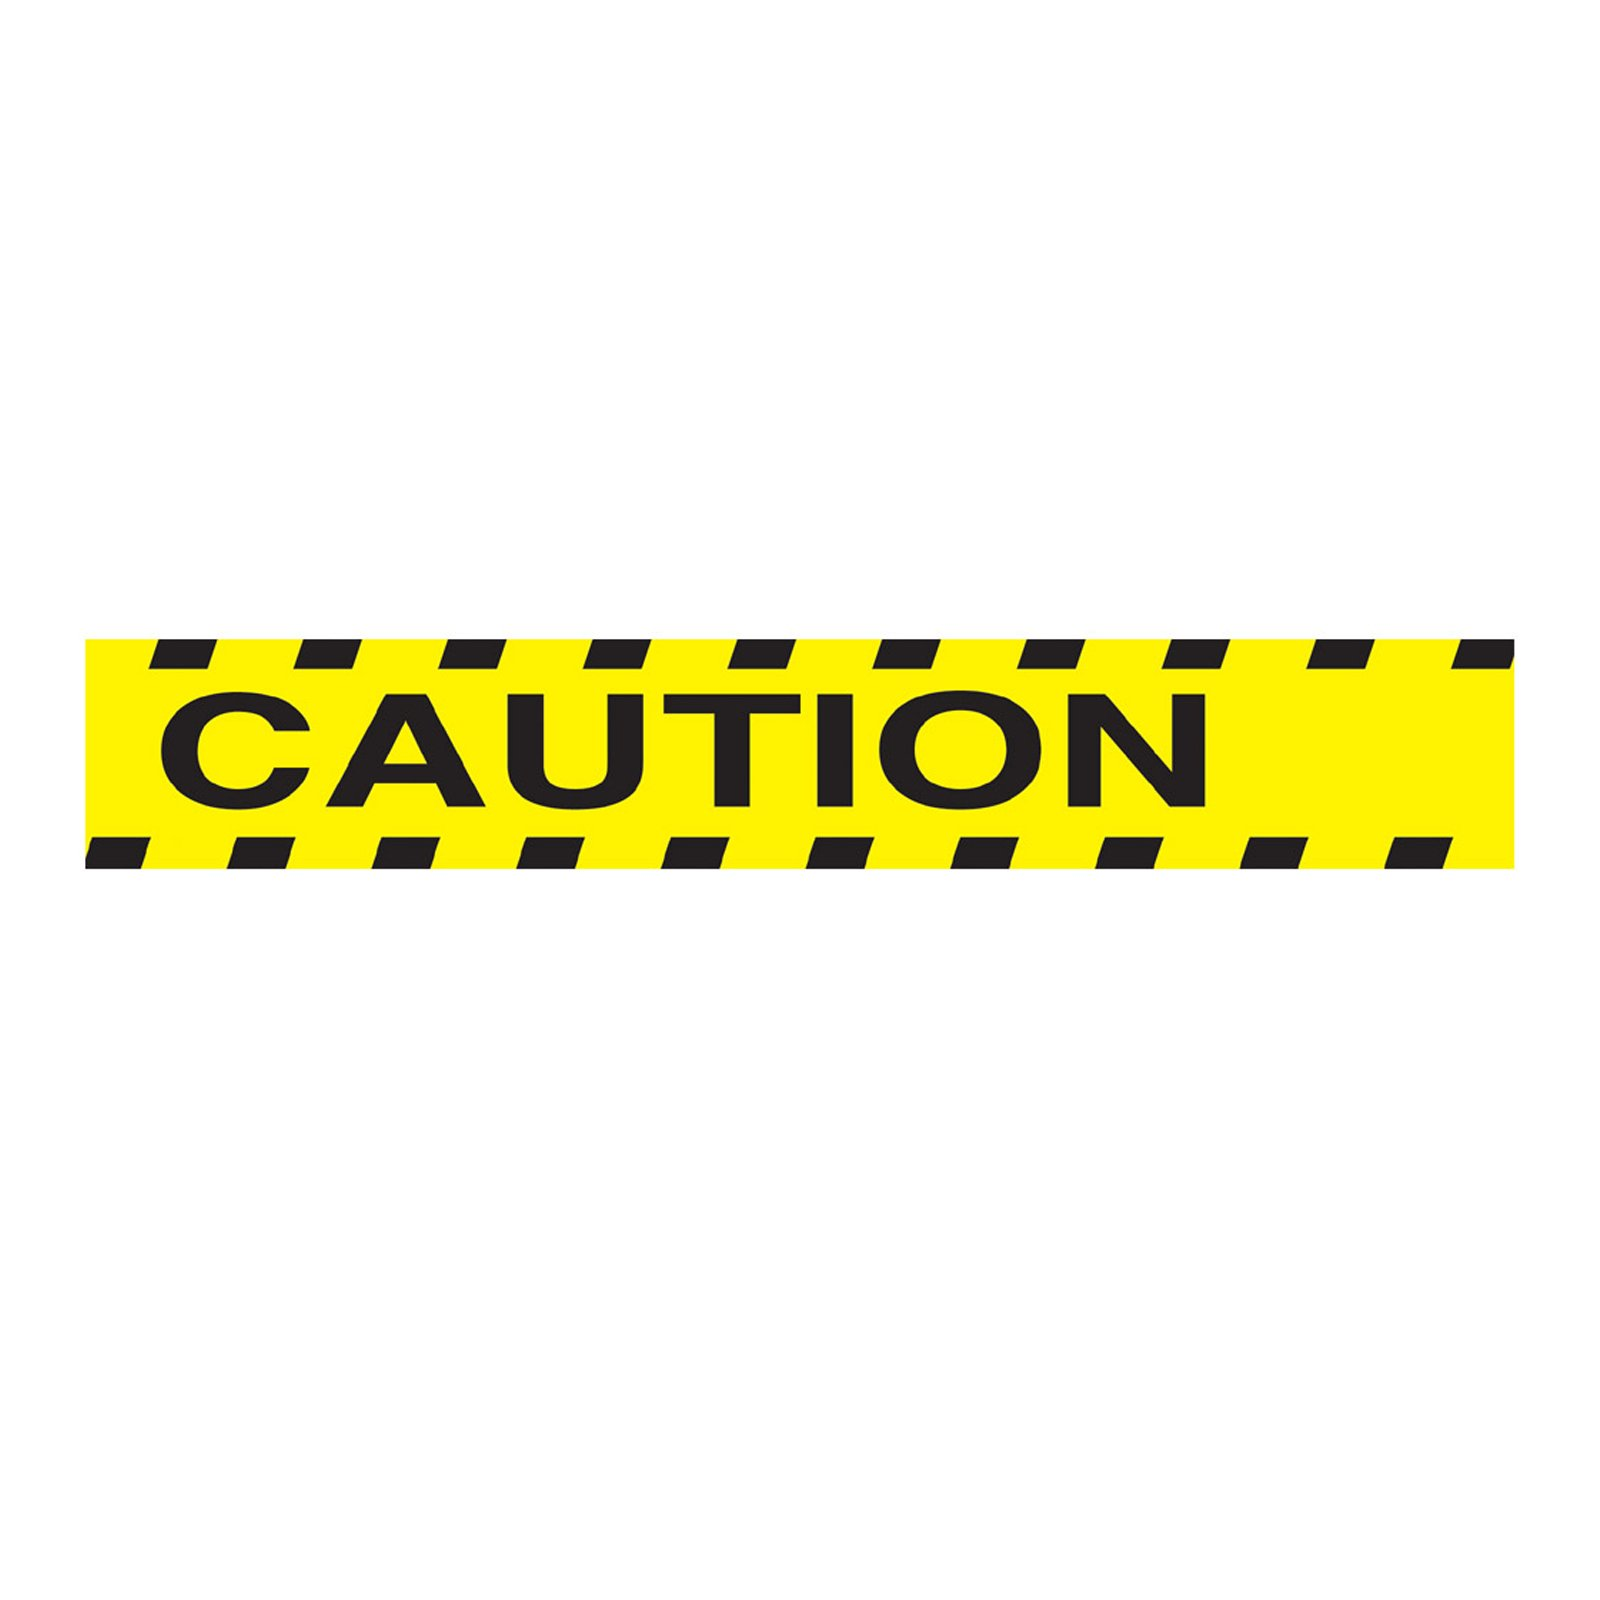 Free Caution Tape Cliparts, Download Free Clip Art, Free Clip Art on.